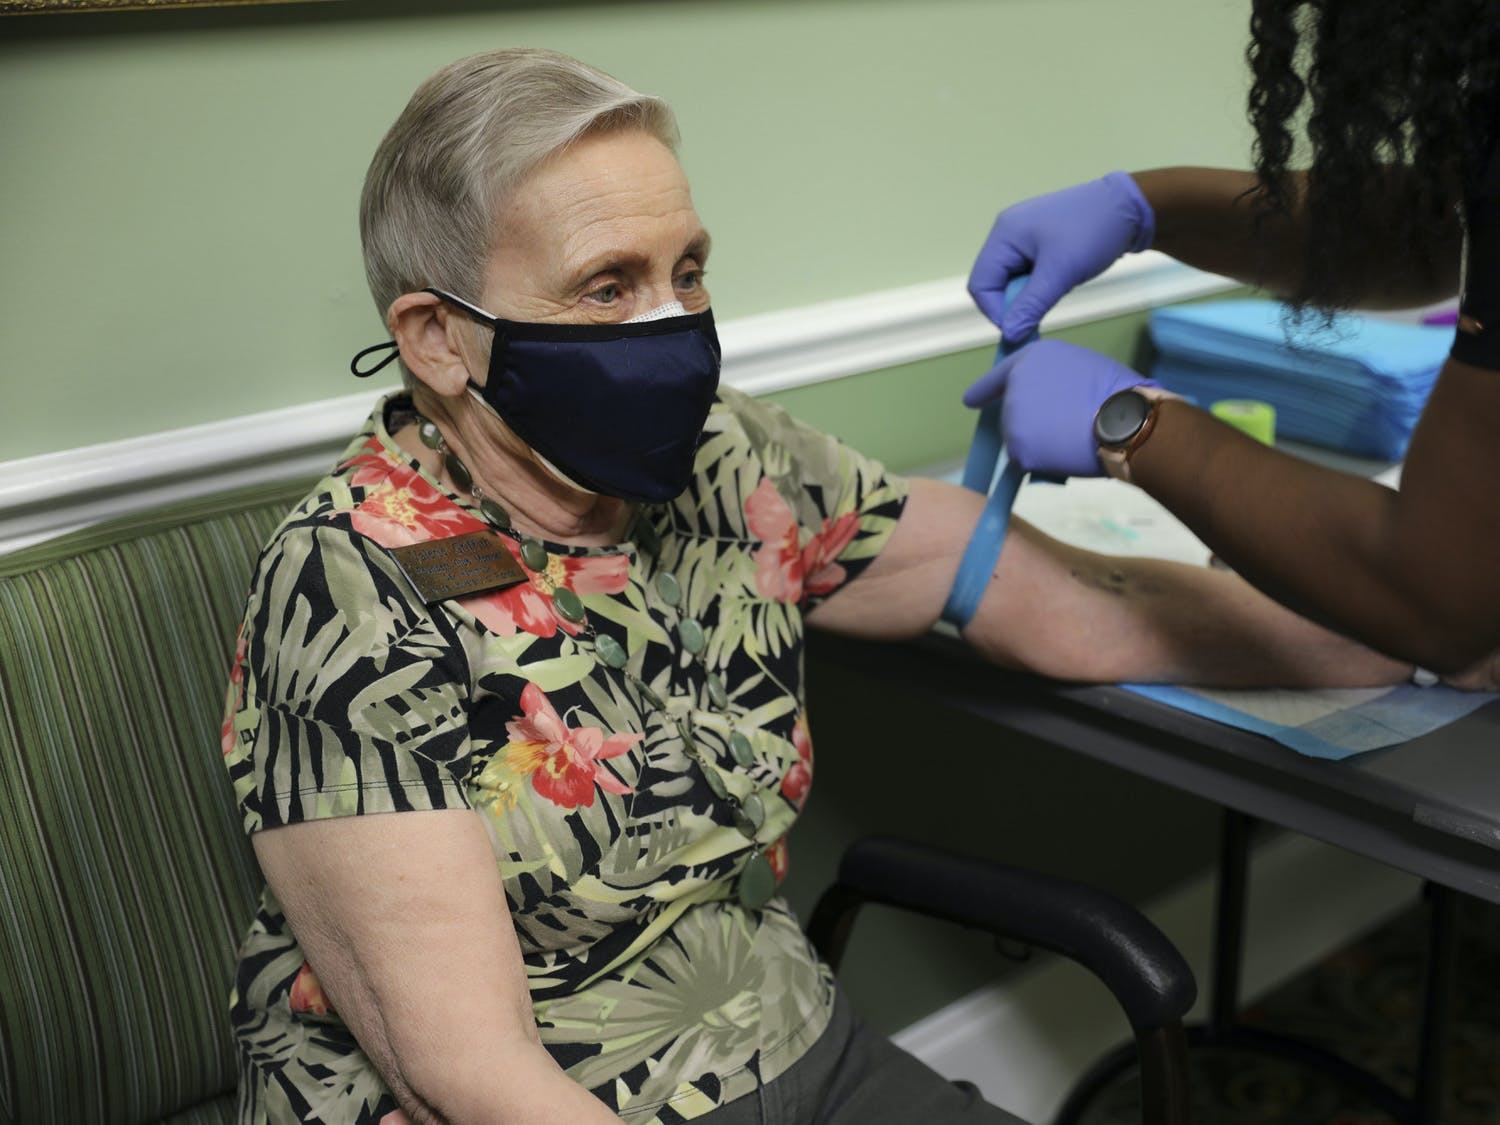 Valerie Griffith, a Founders Club member of Oak Hammock at the University of Florida, participates in the CITRUS Study as a nurse puts a tourniquet on her arm on Wednesday, June 9, 2021.